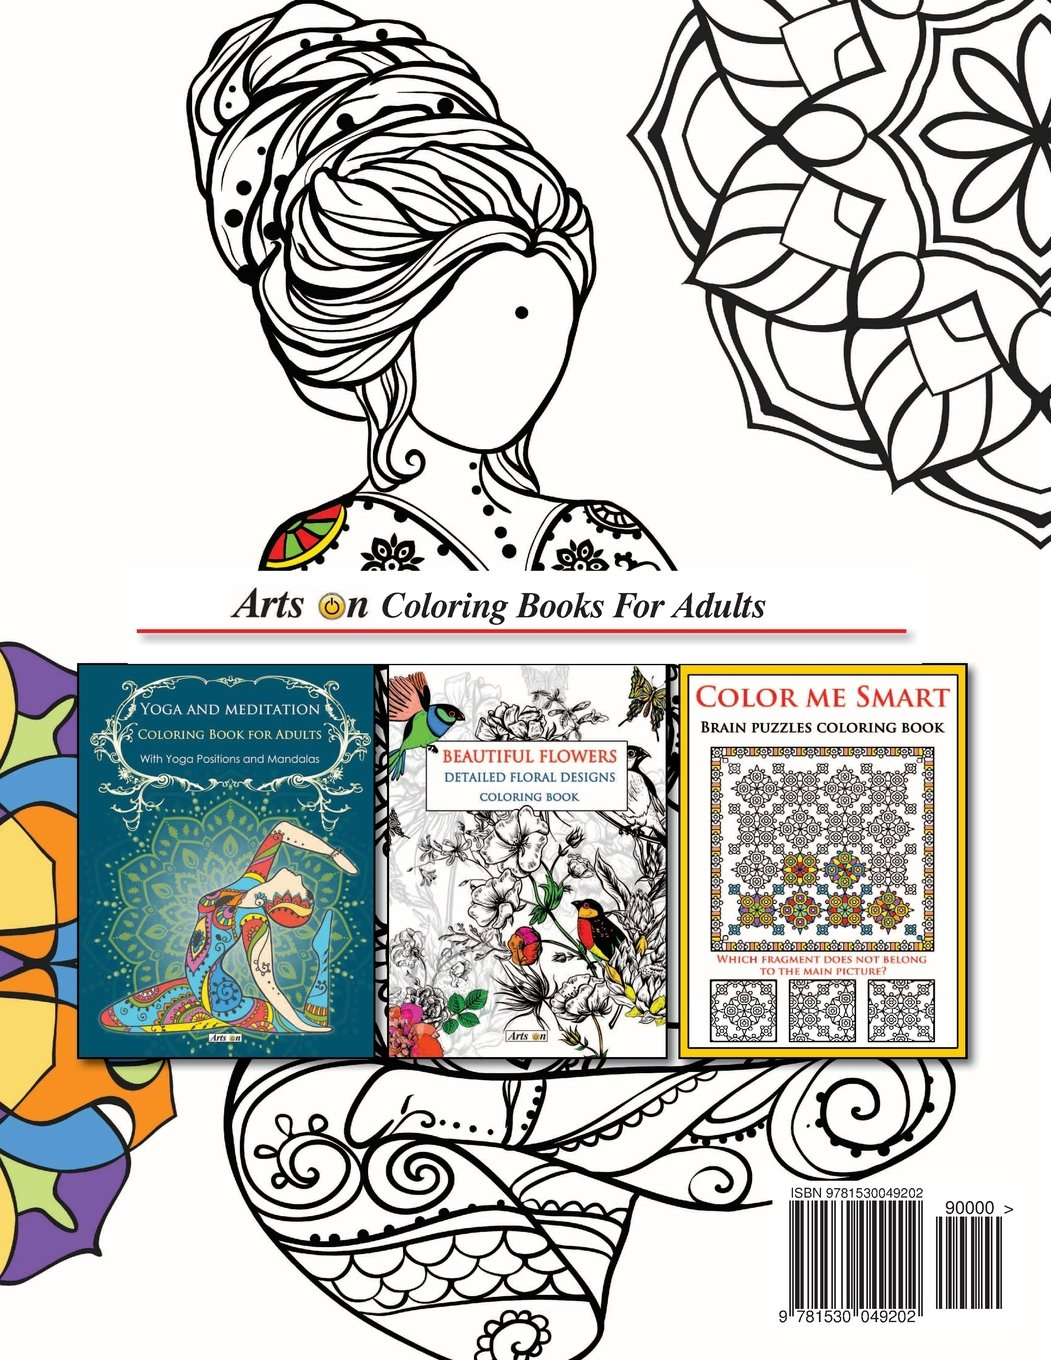 Yoga Coloring Book For Adults - Coloring Paper